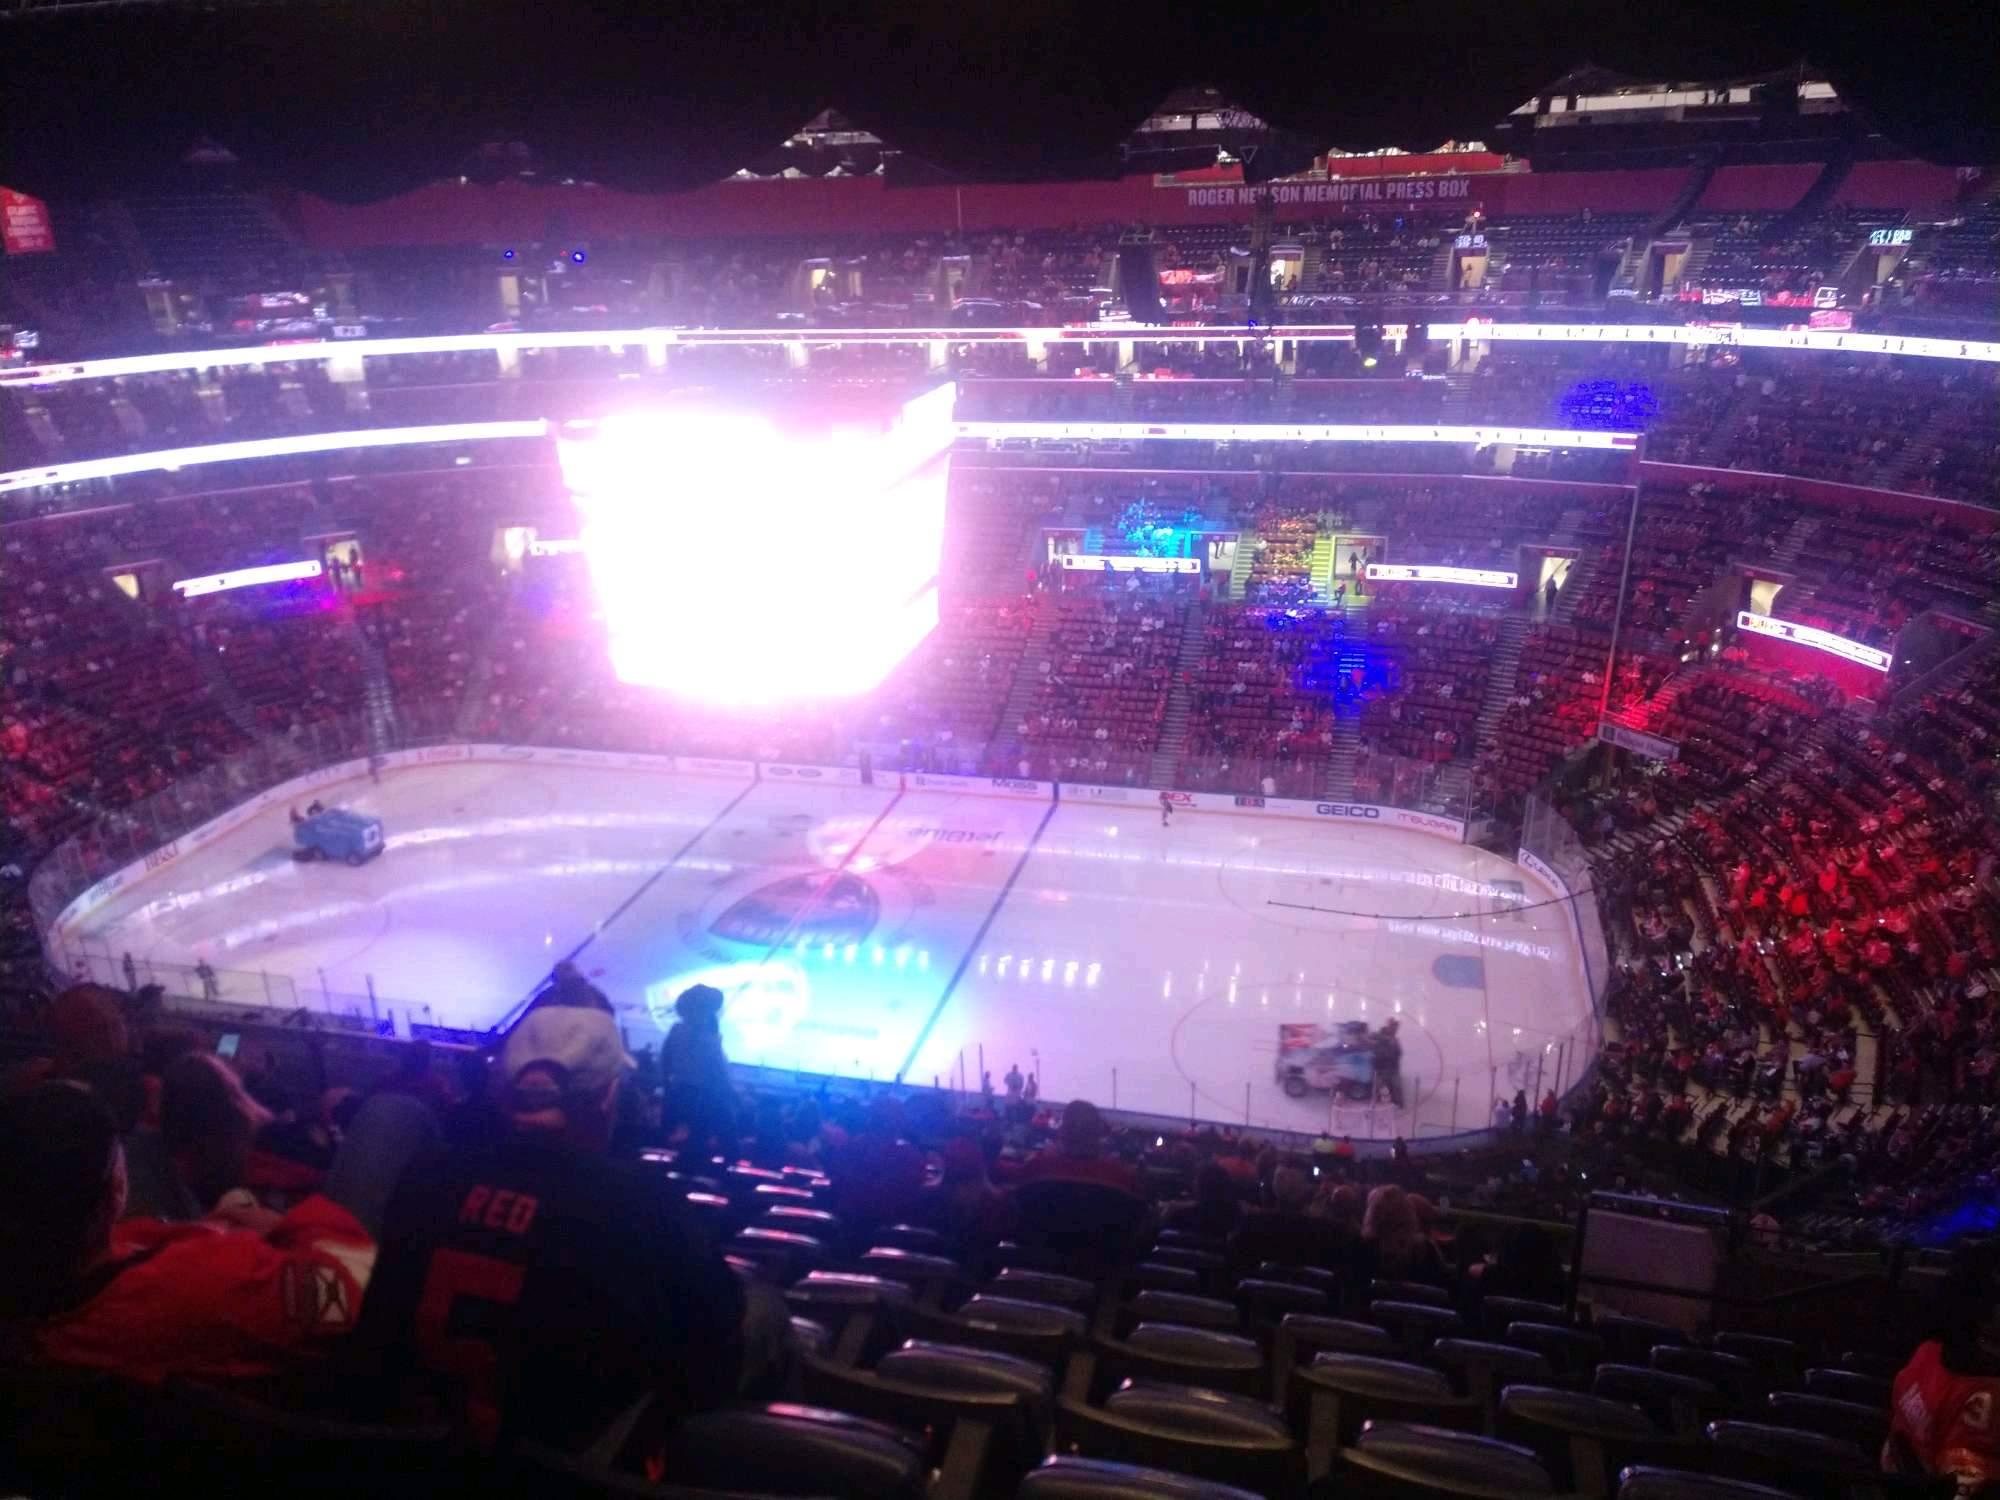 BB&T Center Section 332 Row 15 Seat 7